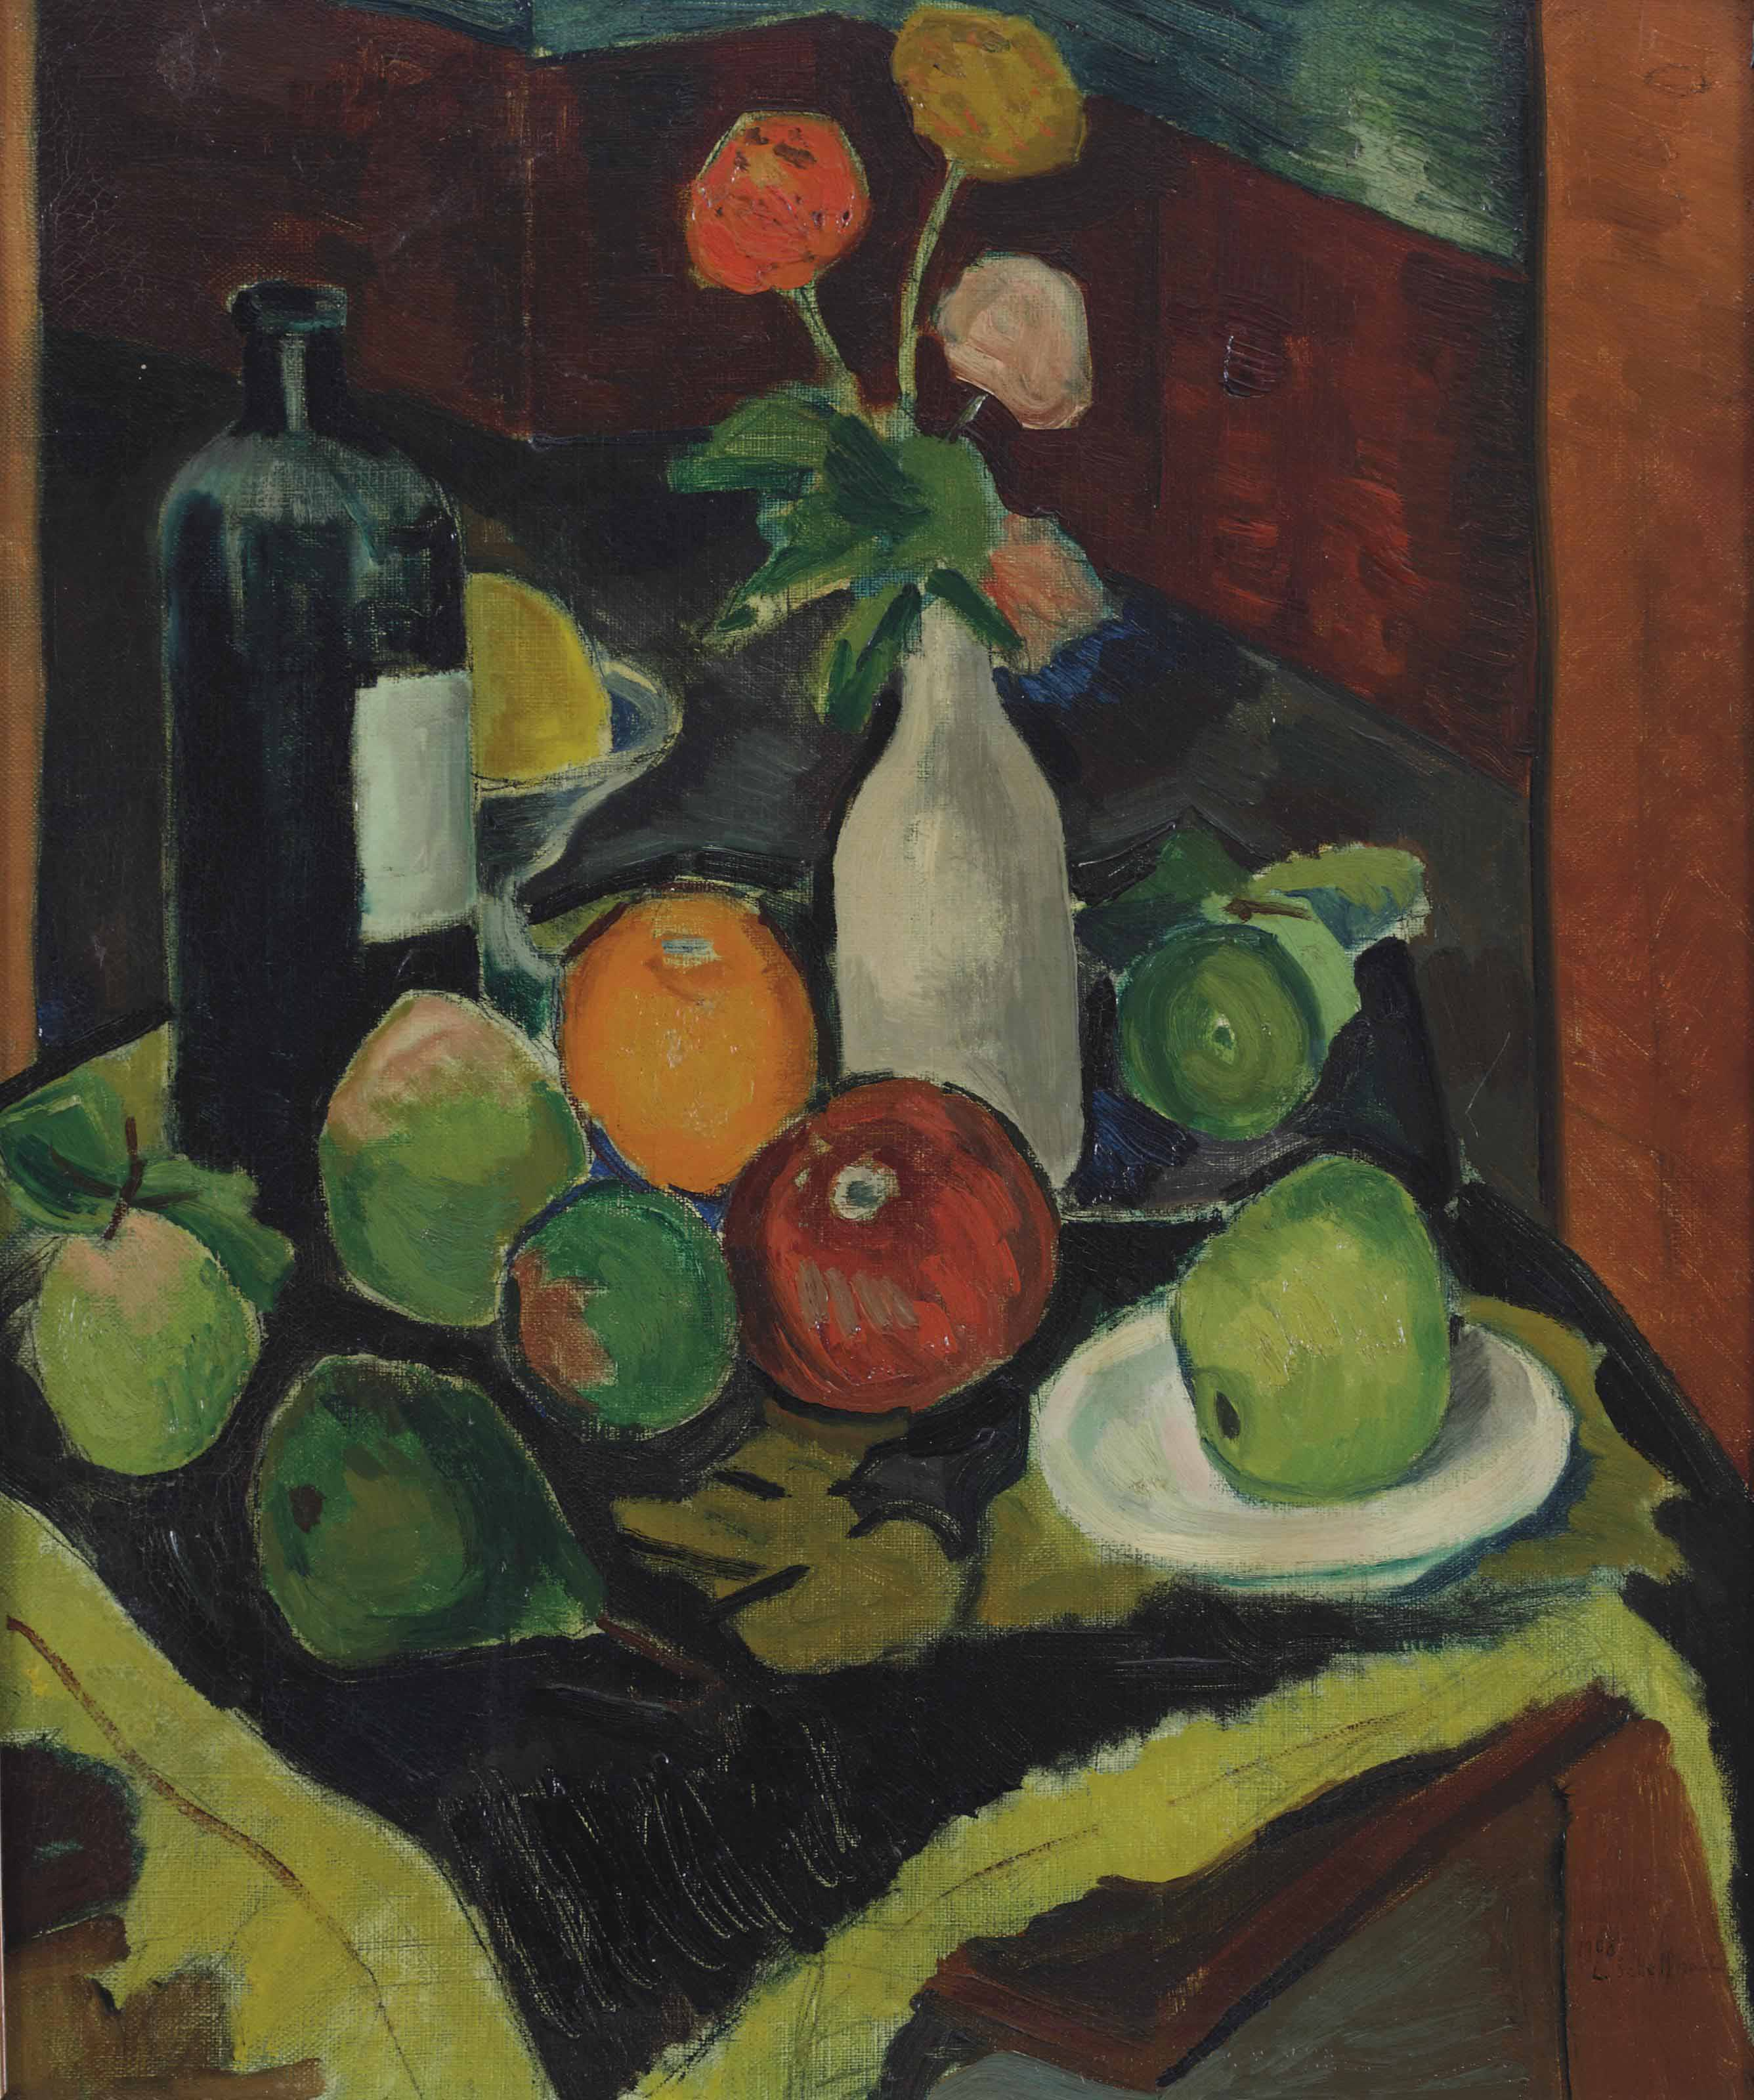 A still life with fruits, flowers and a bottle